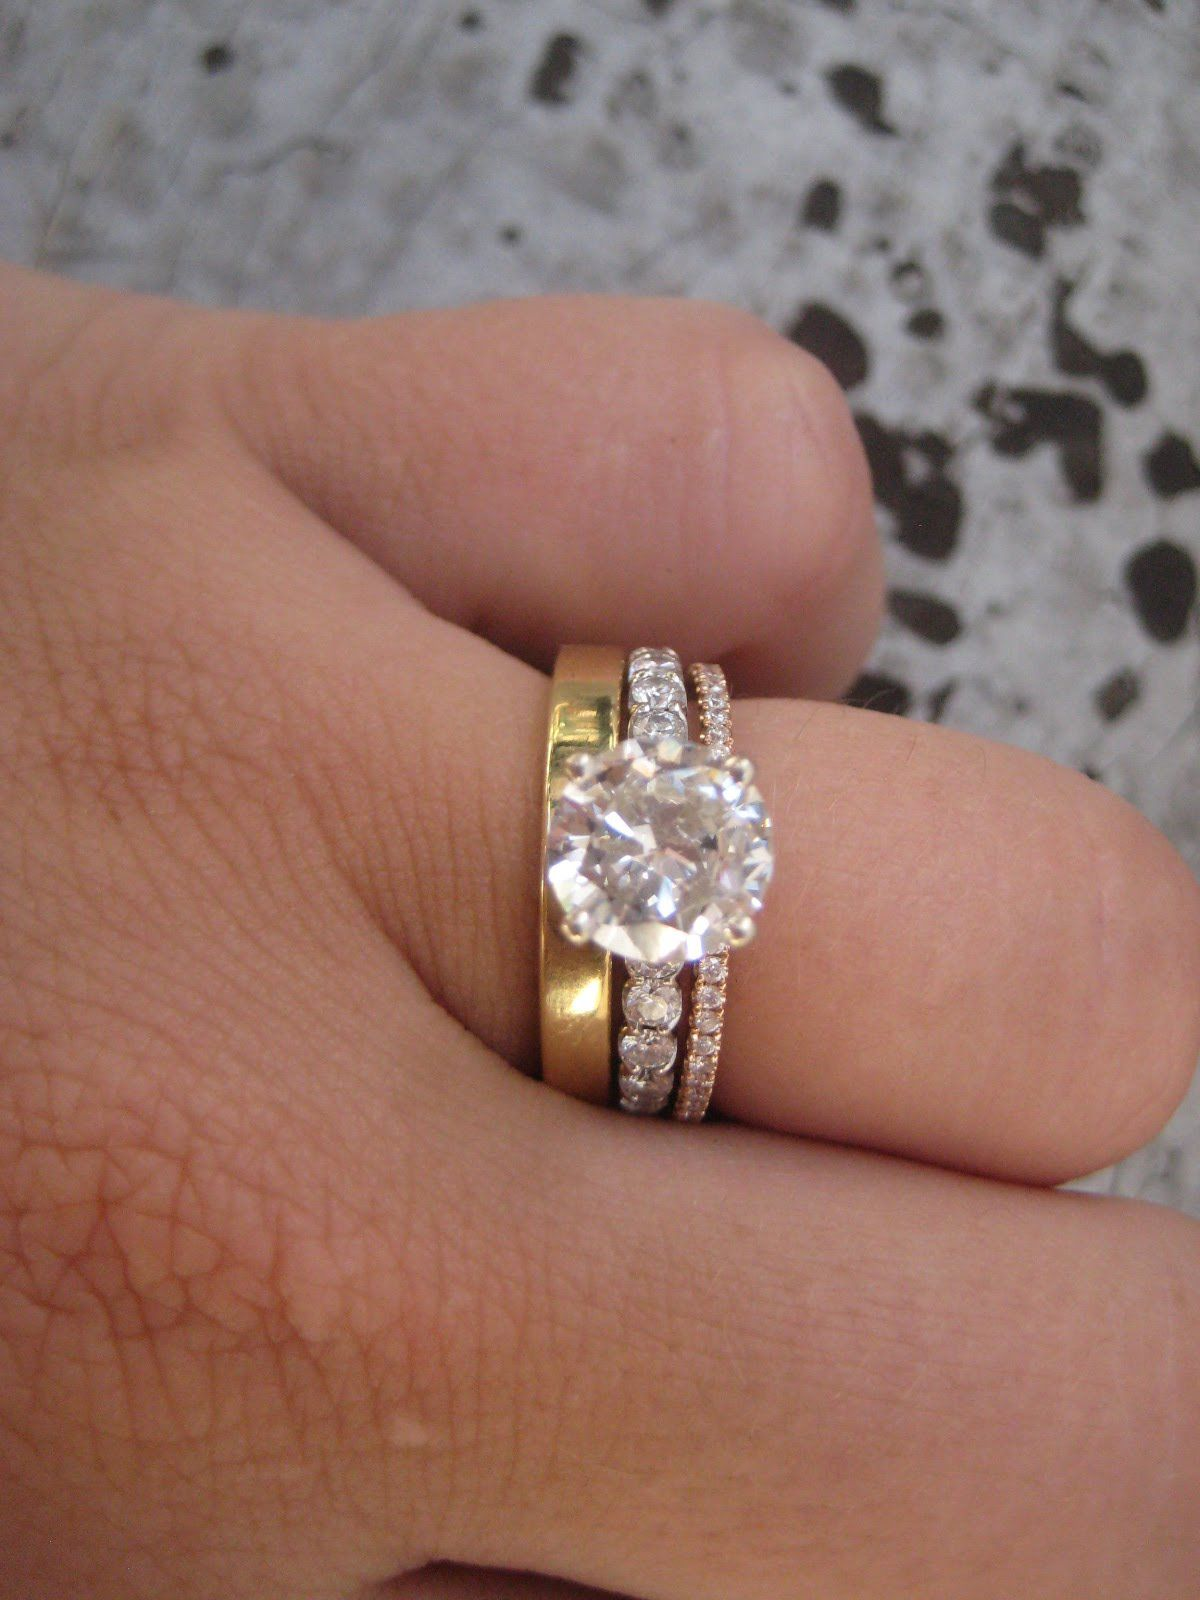 halo for ladies band her real wedding bands diamond gold engagement set yellow square ring rng bridal